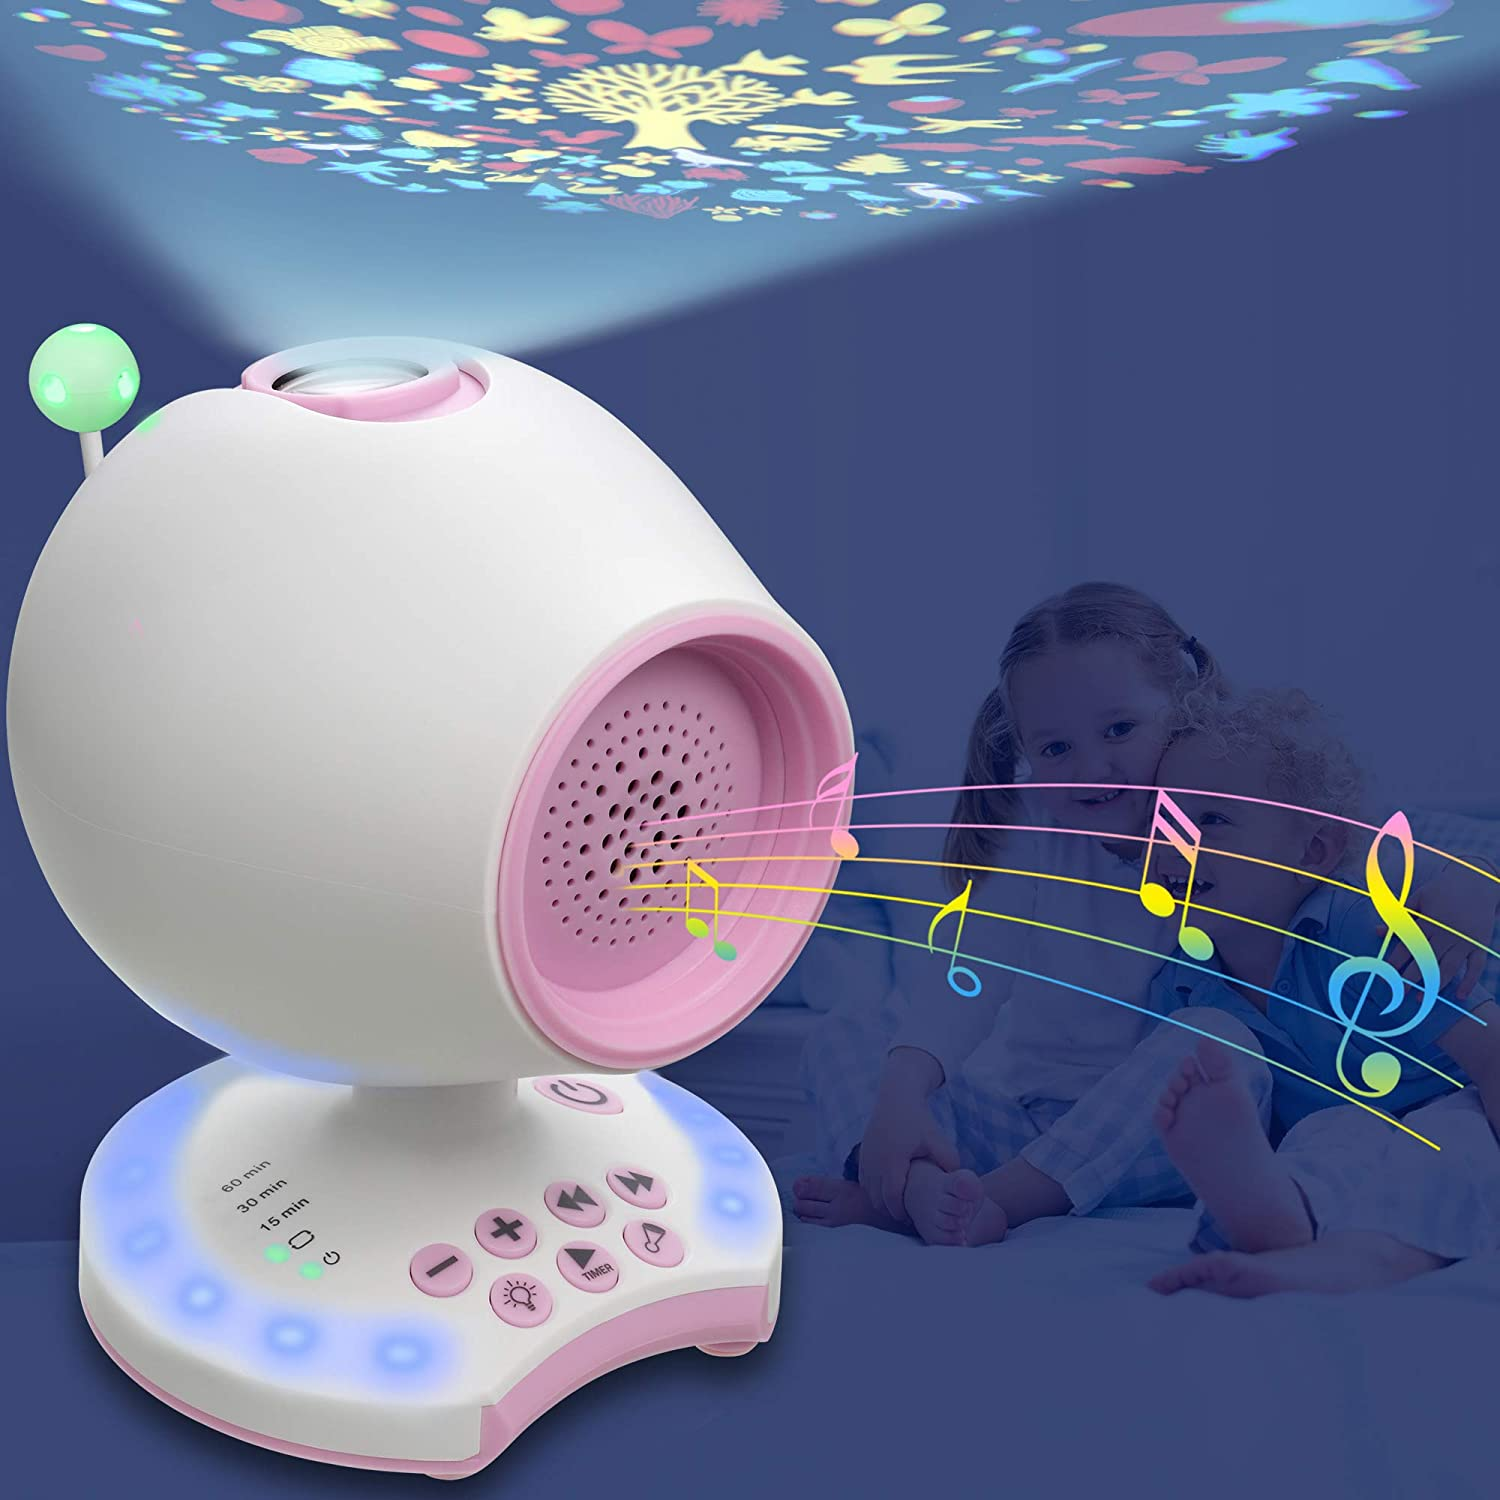 White Noise Sound Machine, Portable Slepp Therapy Soother for Baby Kids, 20 Soothing Lullaby, Ceiling Projection, 7 Colored Night Light, Auto-Off Timer, Headphone Jack, Sound Spa for Home Bedroom